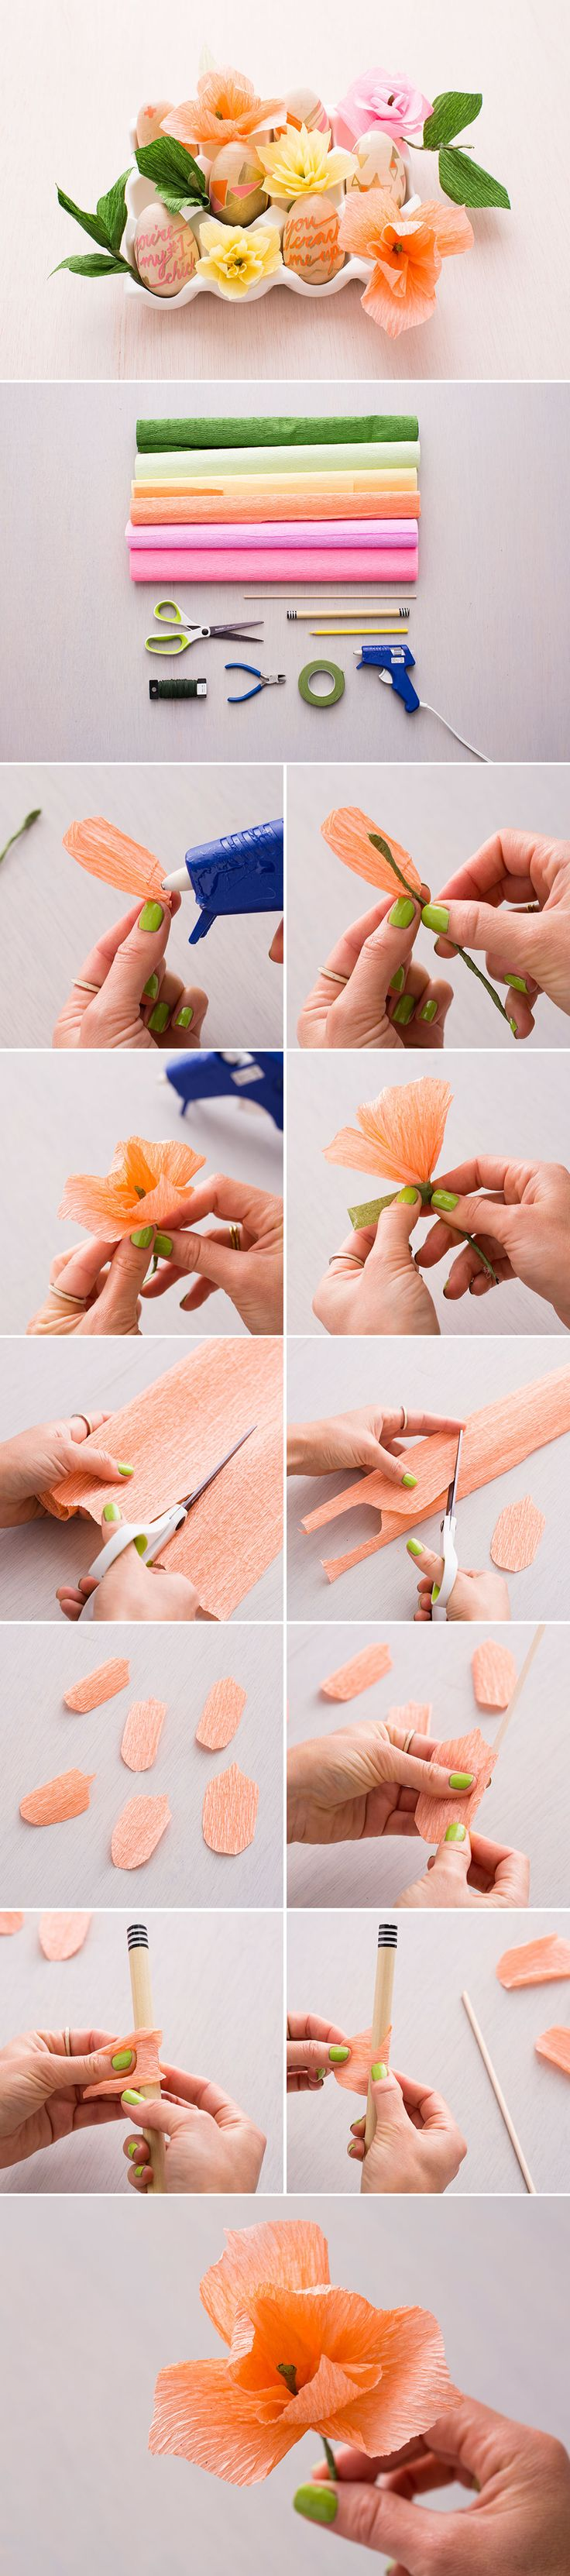 How To Make Crepe Paper Flowers Crepe Paper Crpes And Tutorials